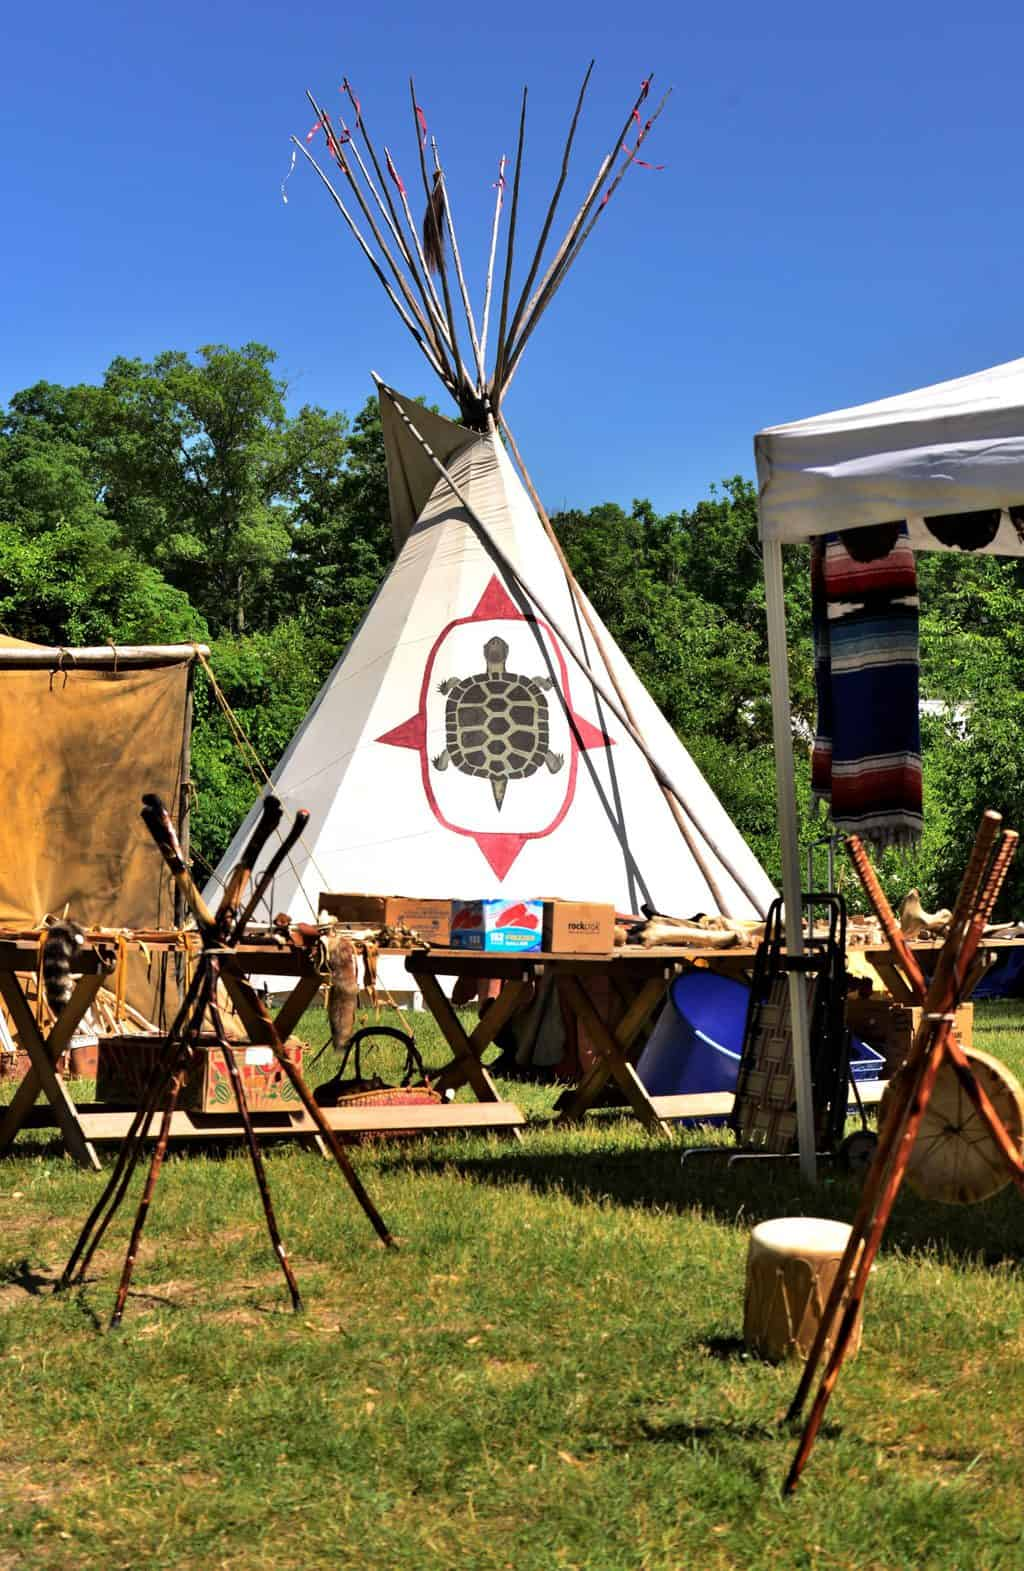 (Cancelled) 46th Annual Native American Pow-Wow and Craft Fair